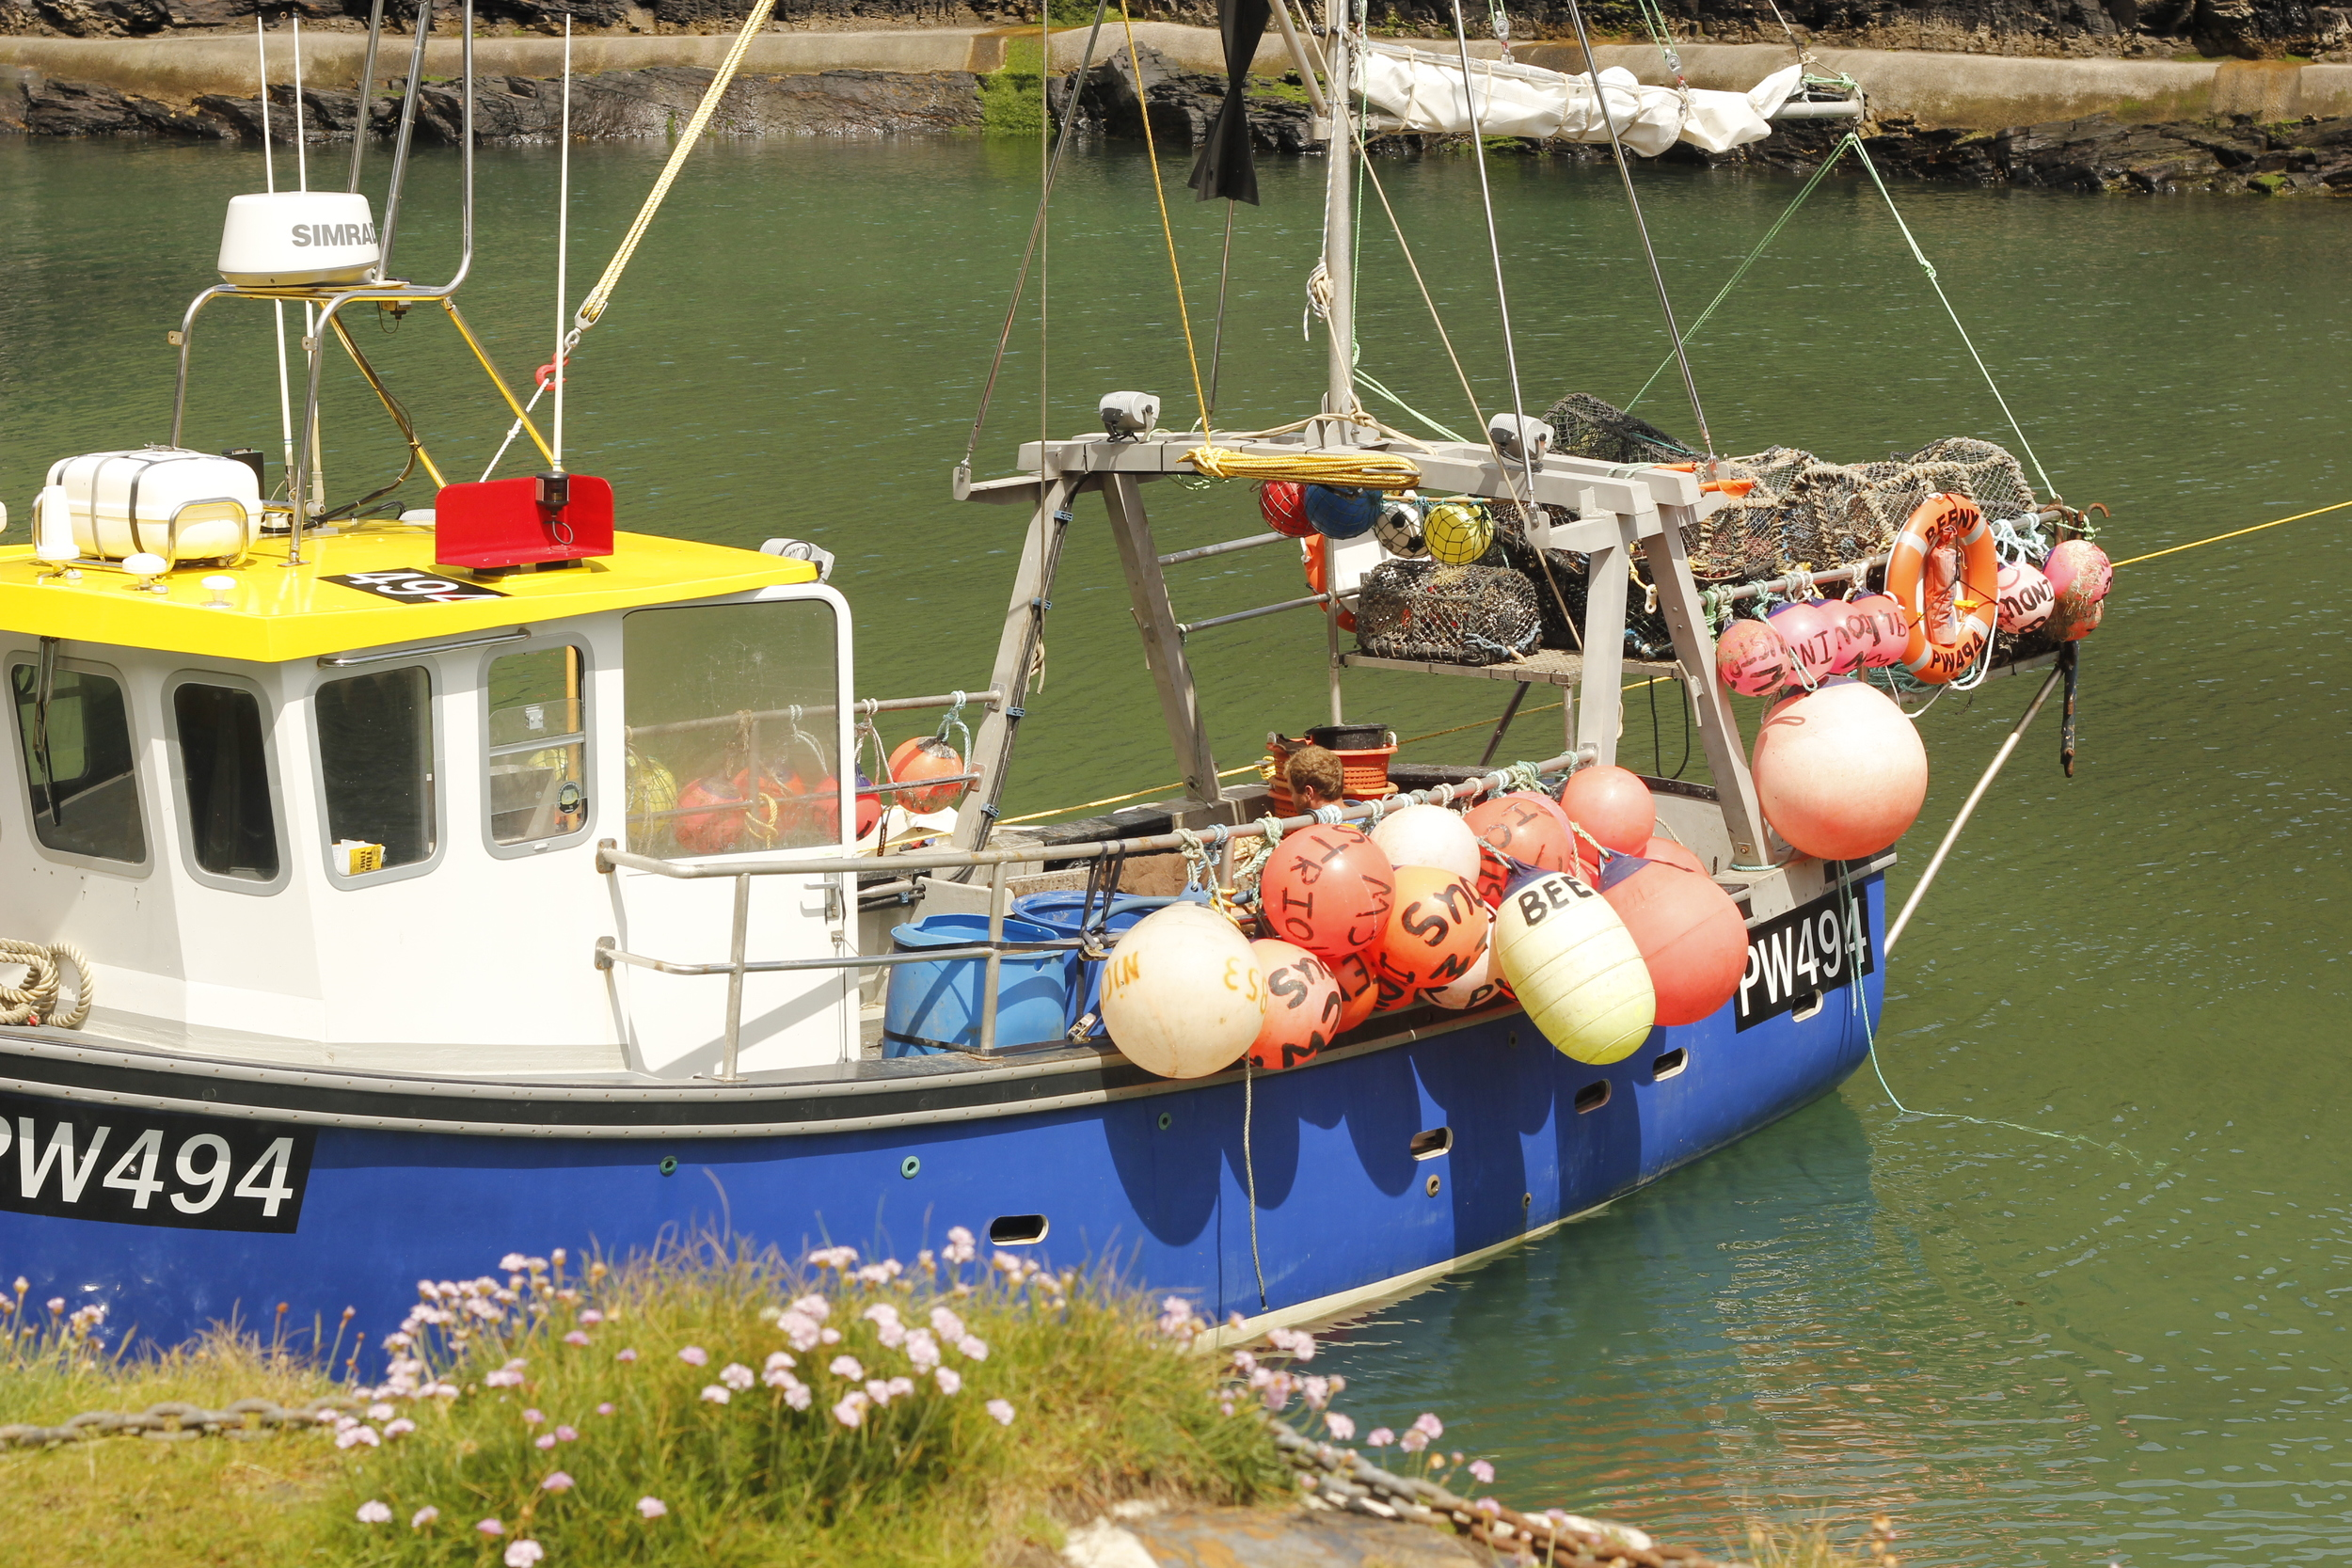 A Cornish fishing boat